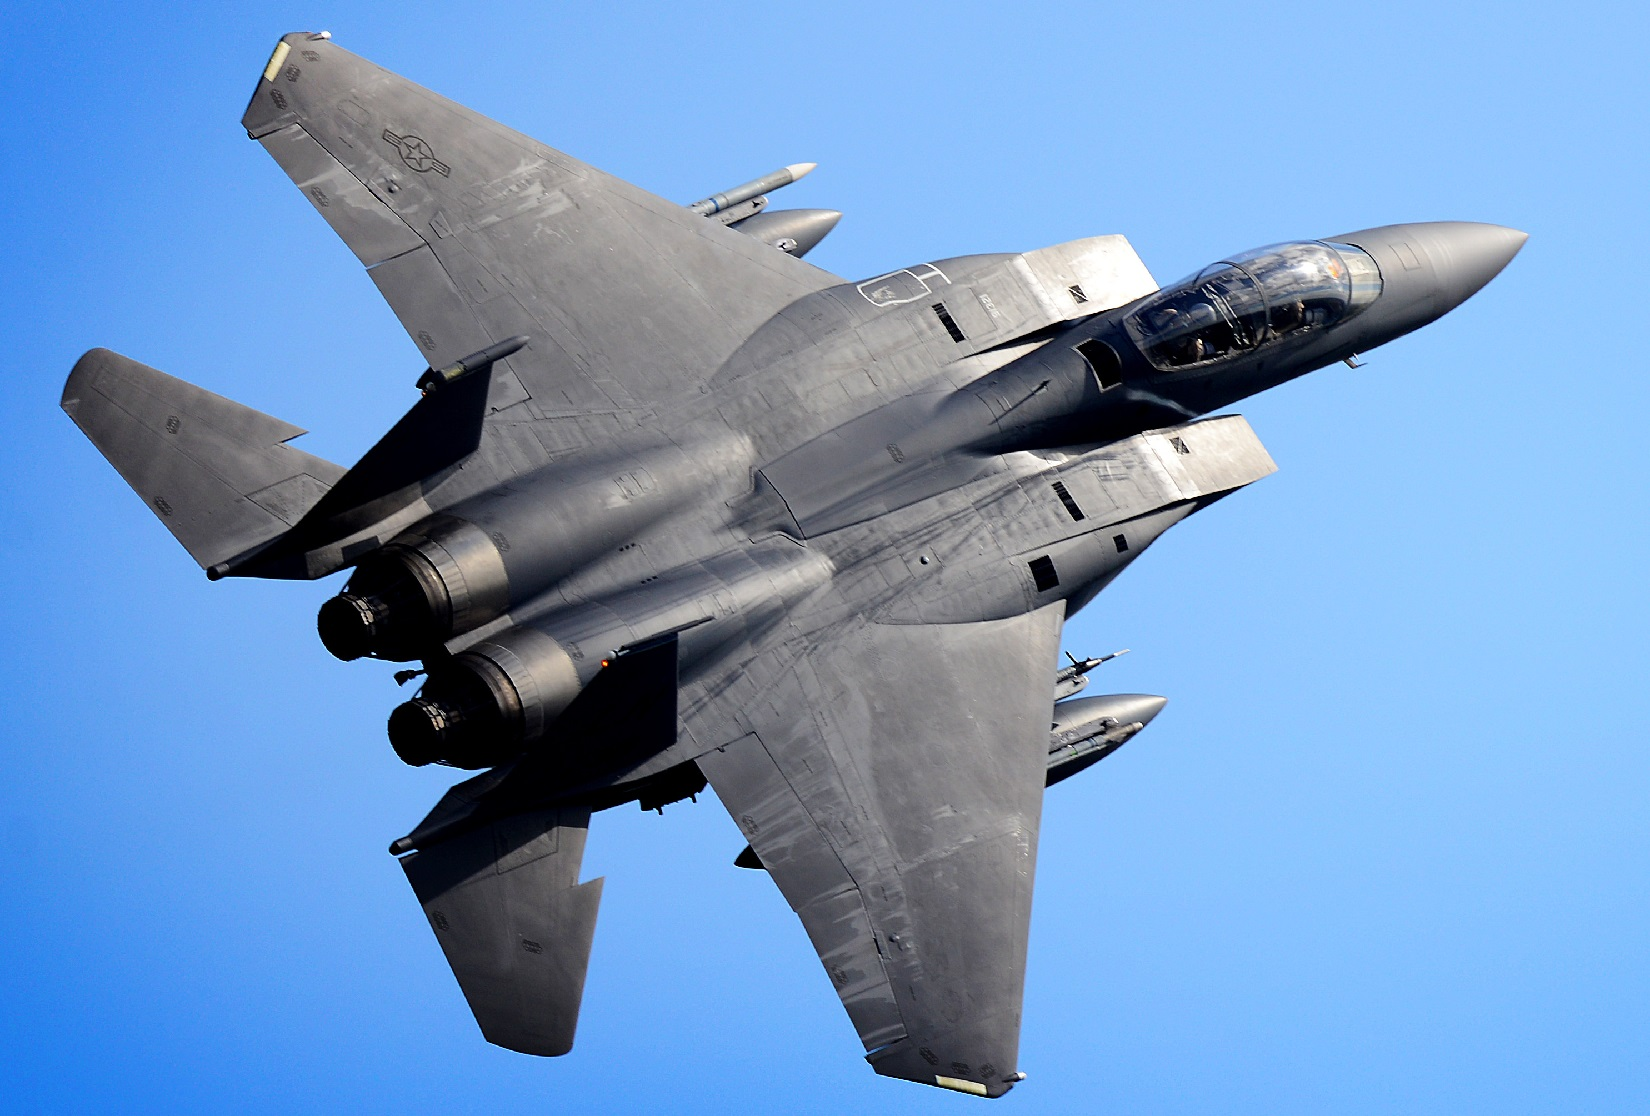 An Air Force Pilot Told Us What It Is Like to Attack with an F-15